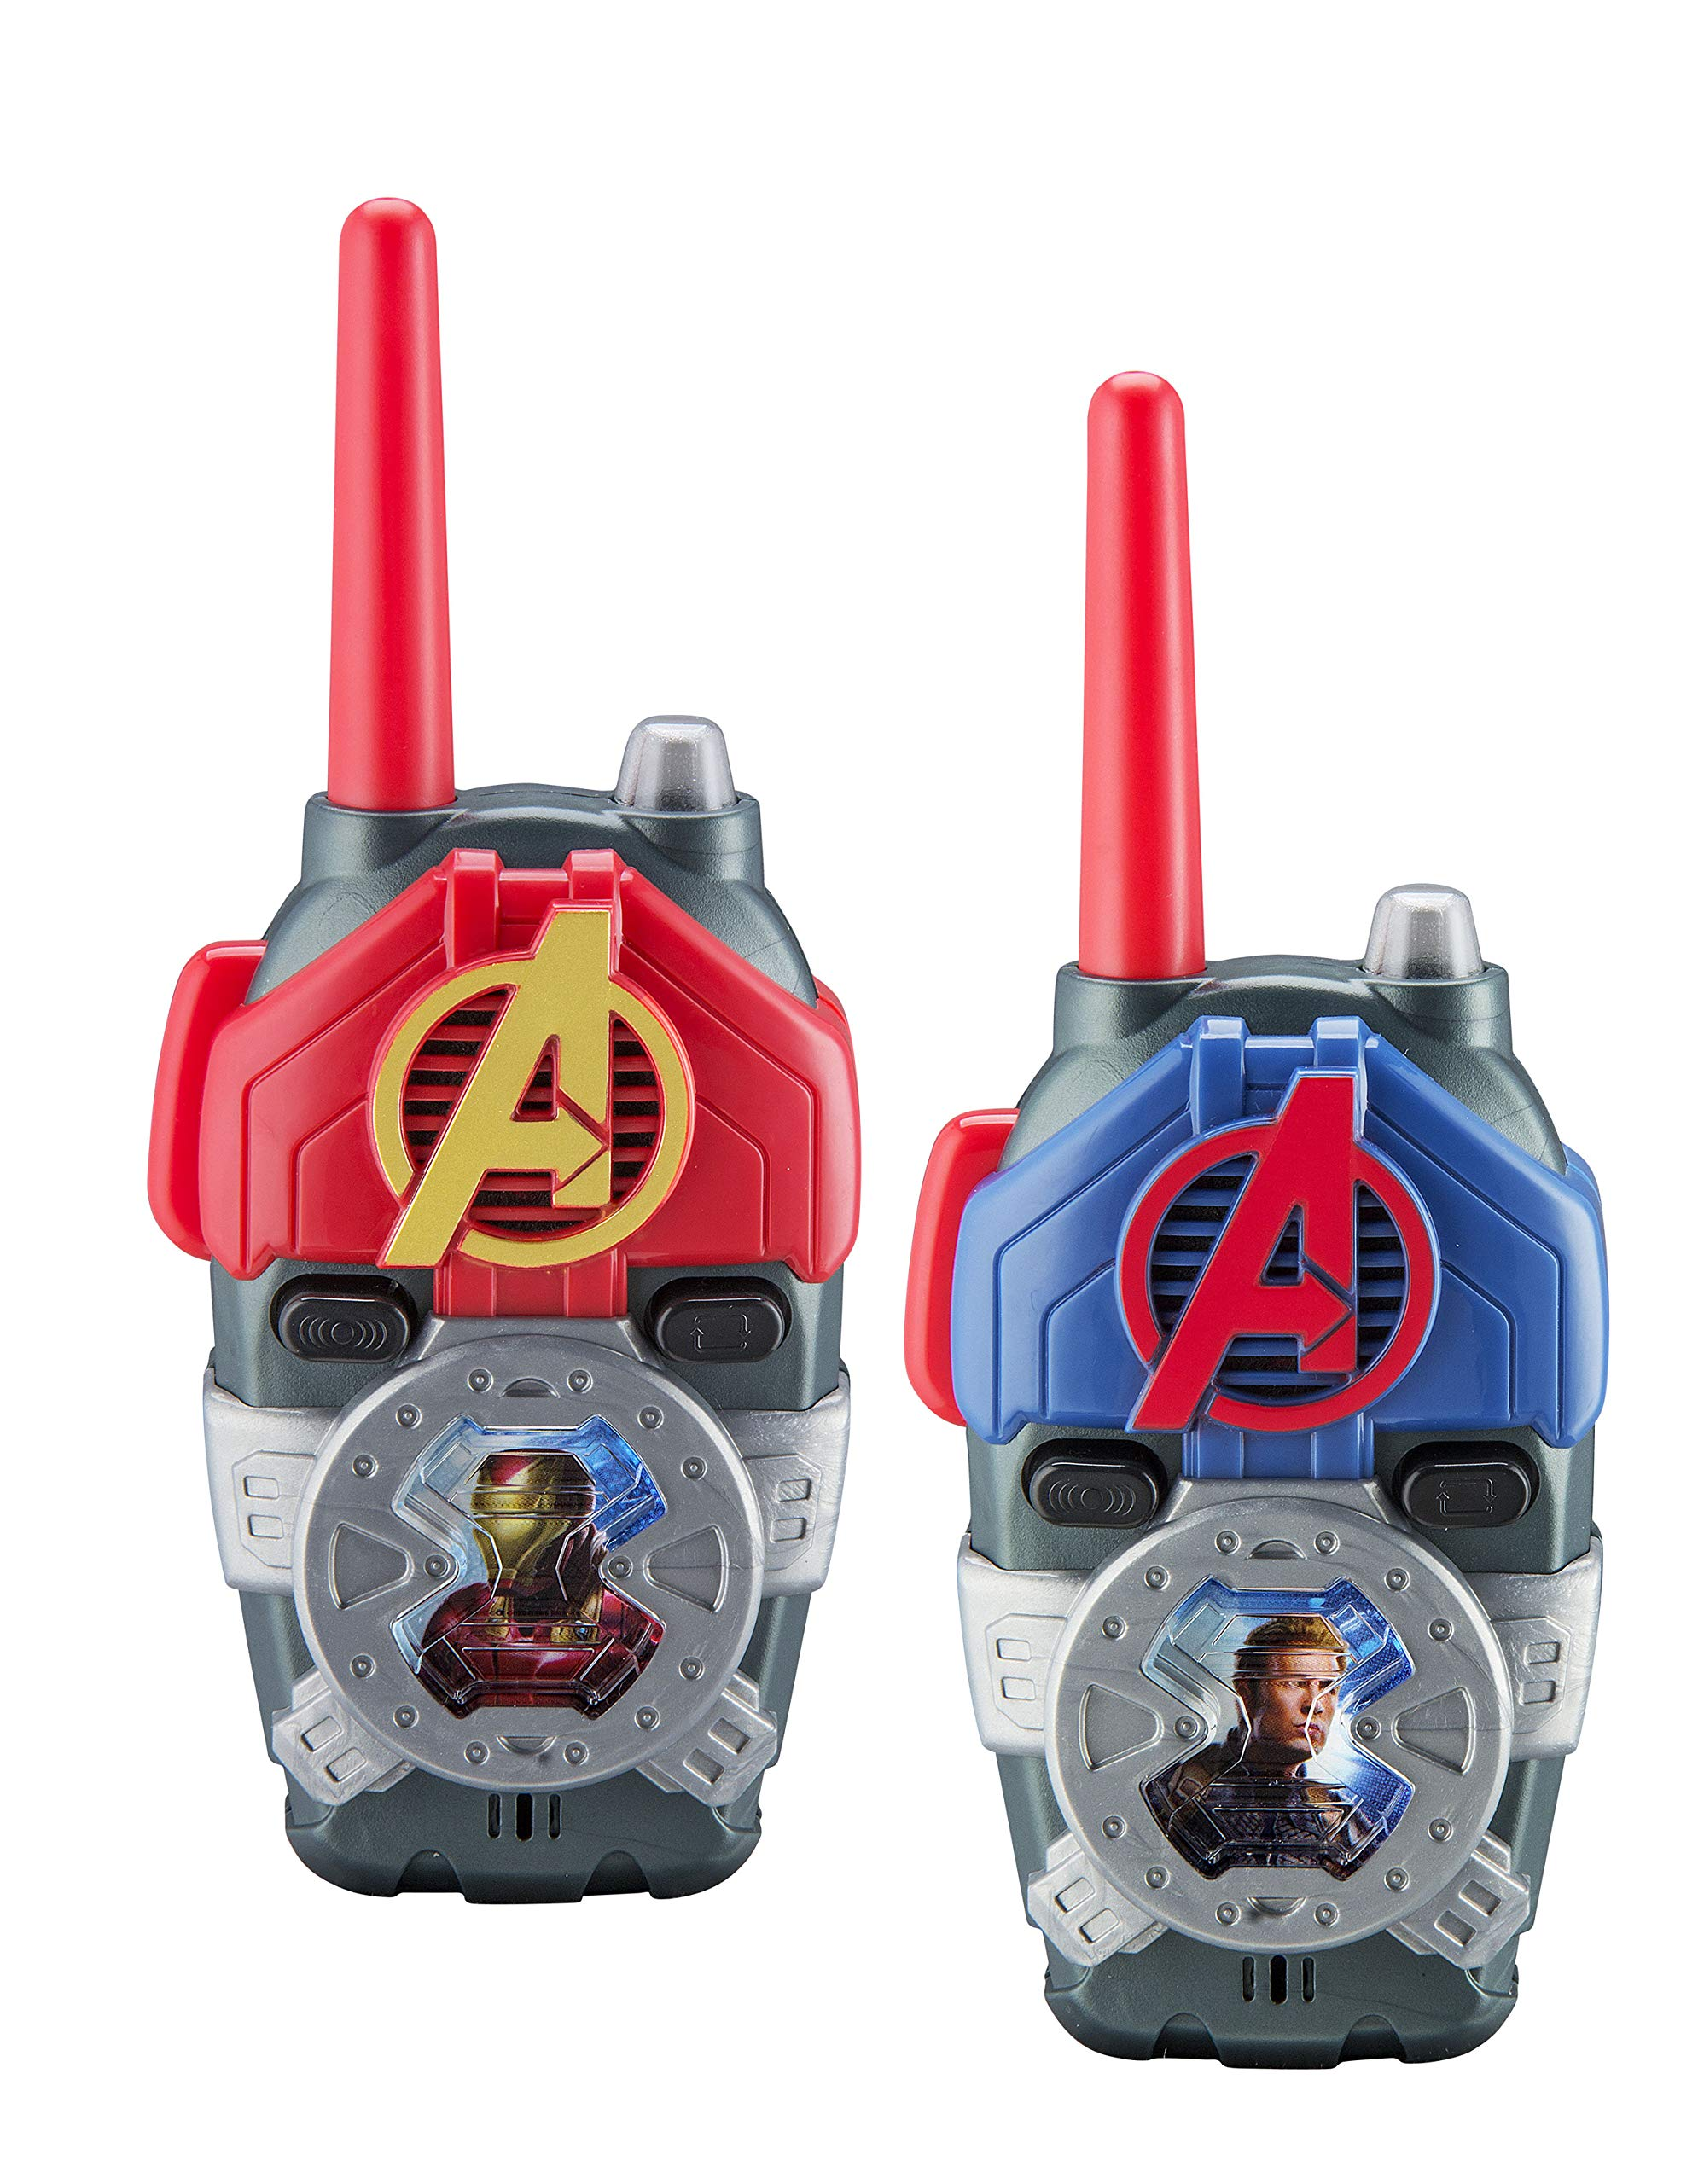 eKids Avengers Endgame FRS Walkie Talkies with Lights & Sounds Kid Friendly Easy to Use by eKids (Image #1)